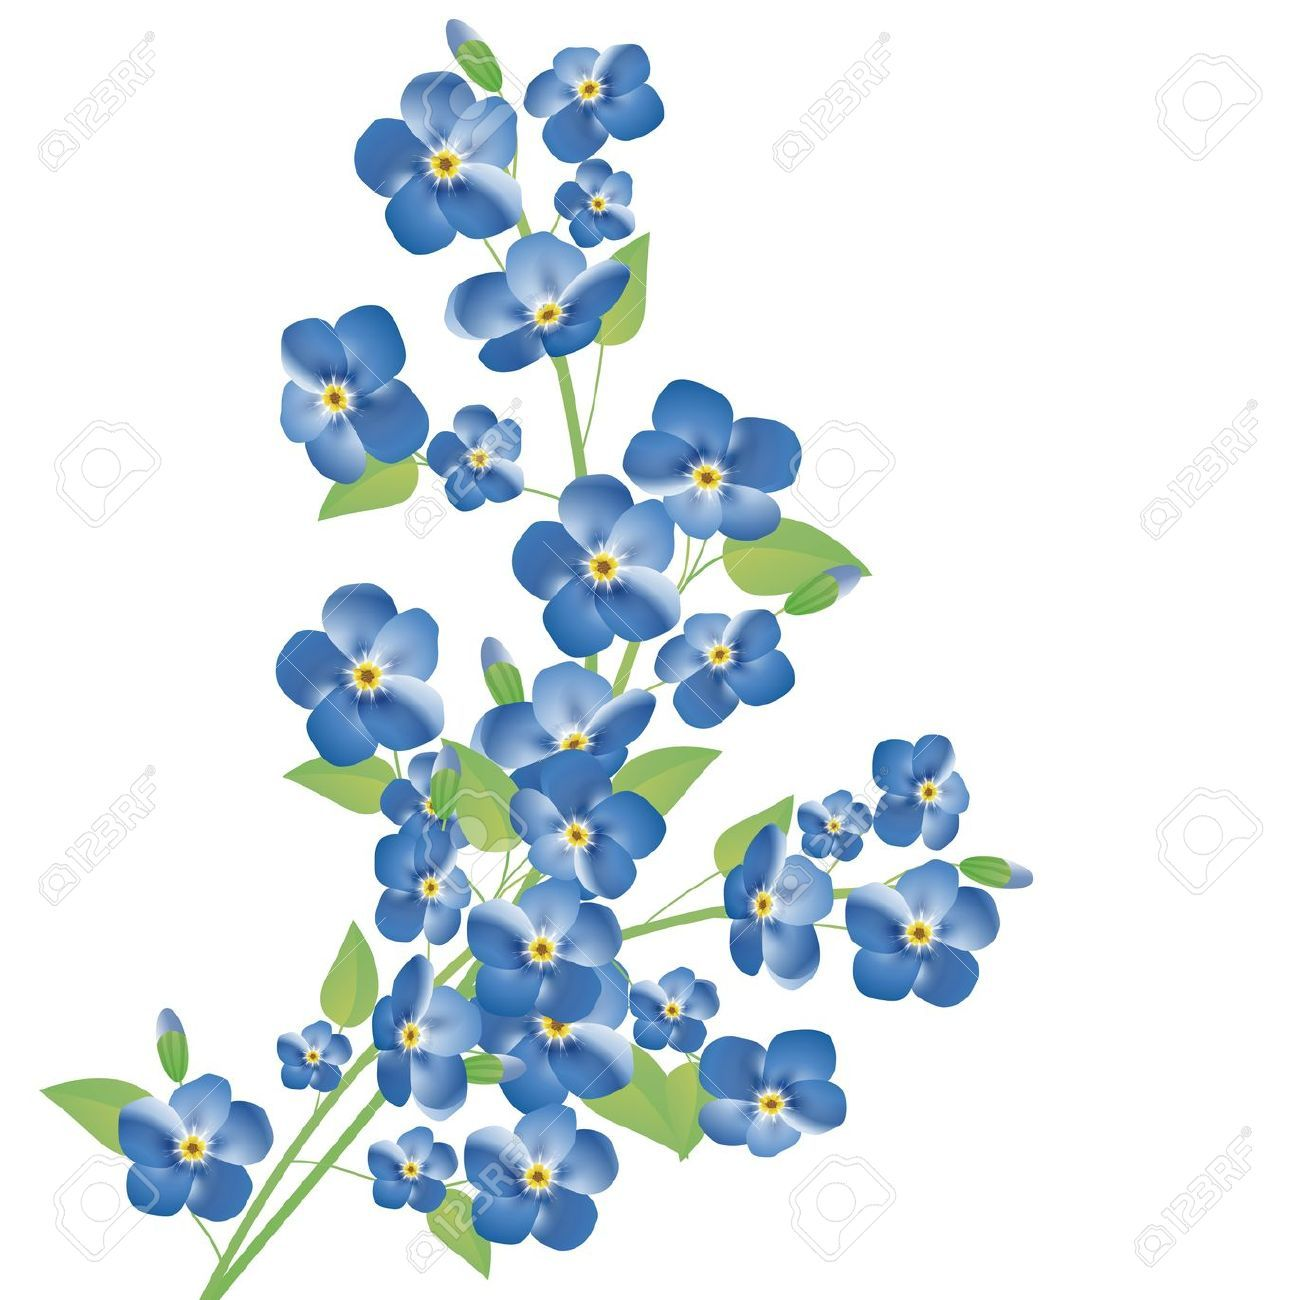 Forget Me Not Stock Illustrations, Cliparts And Royalty Free ...